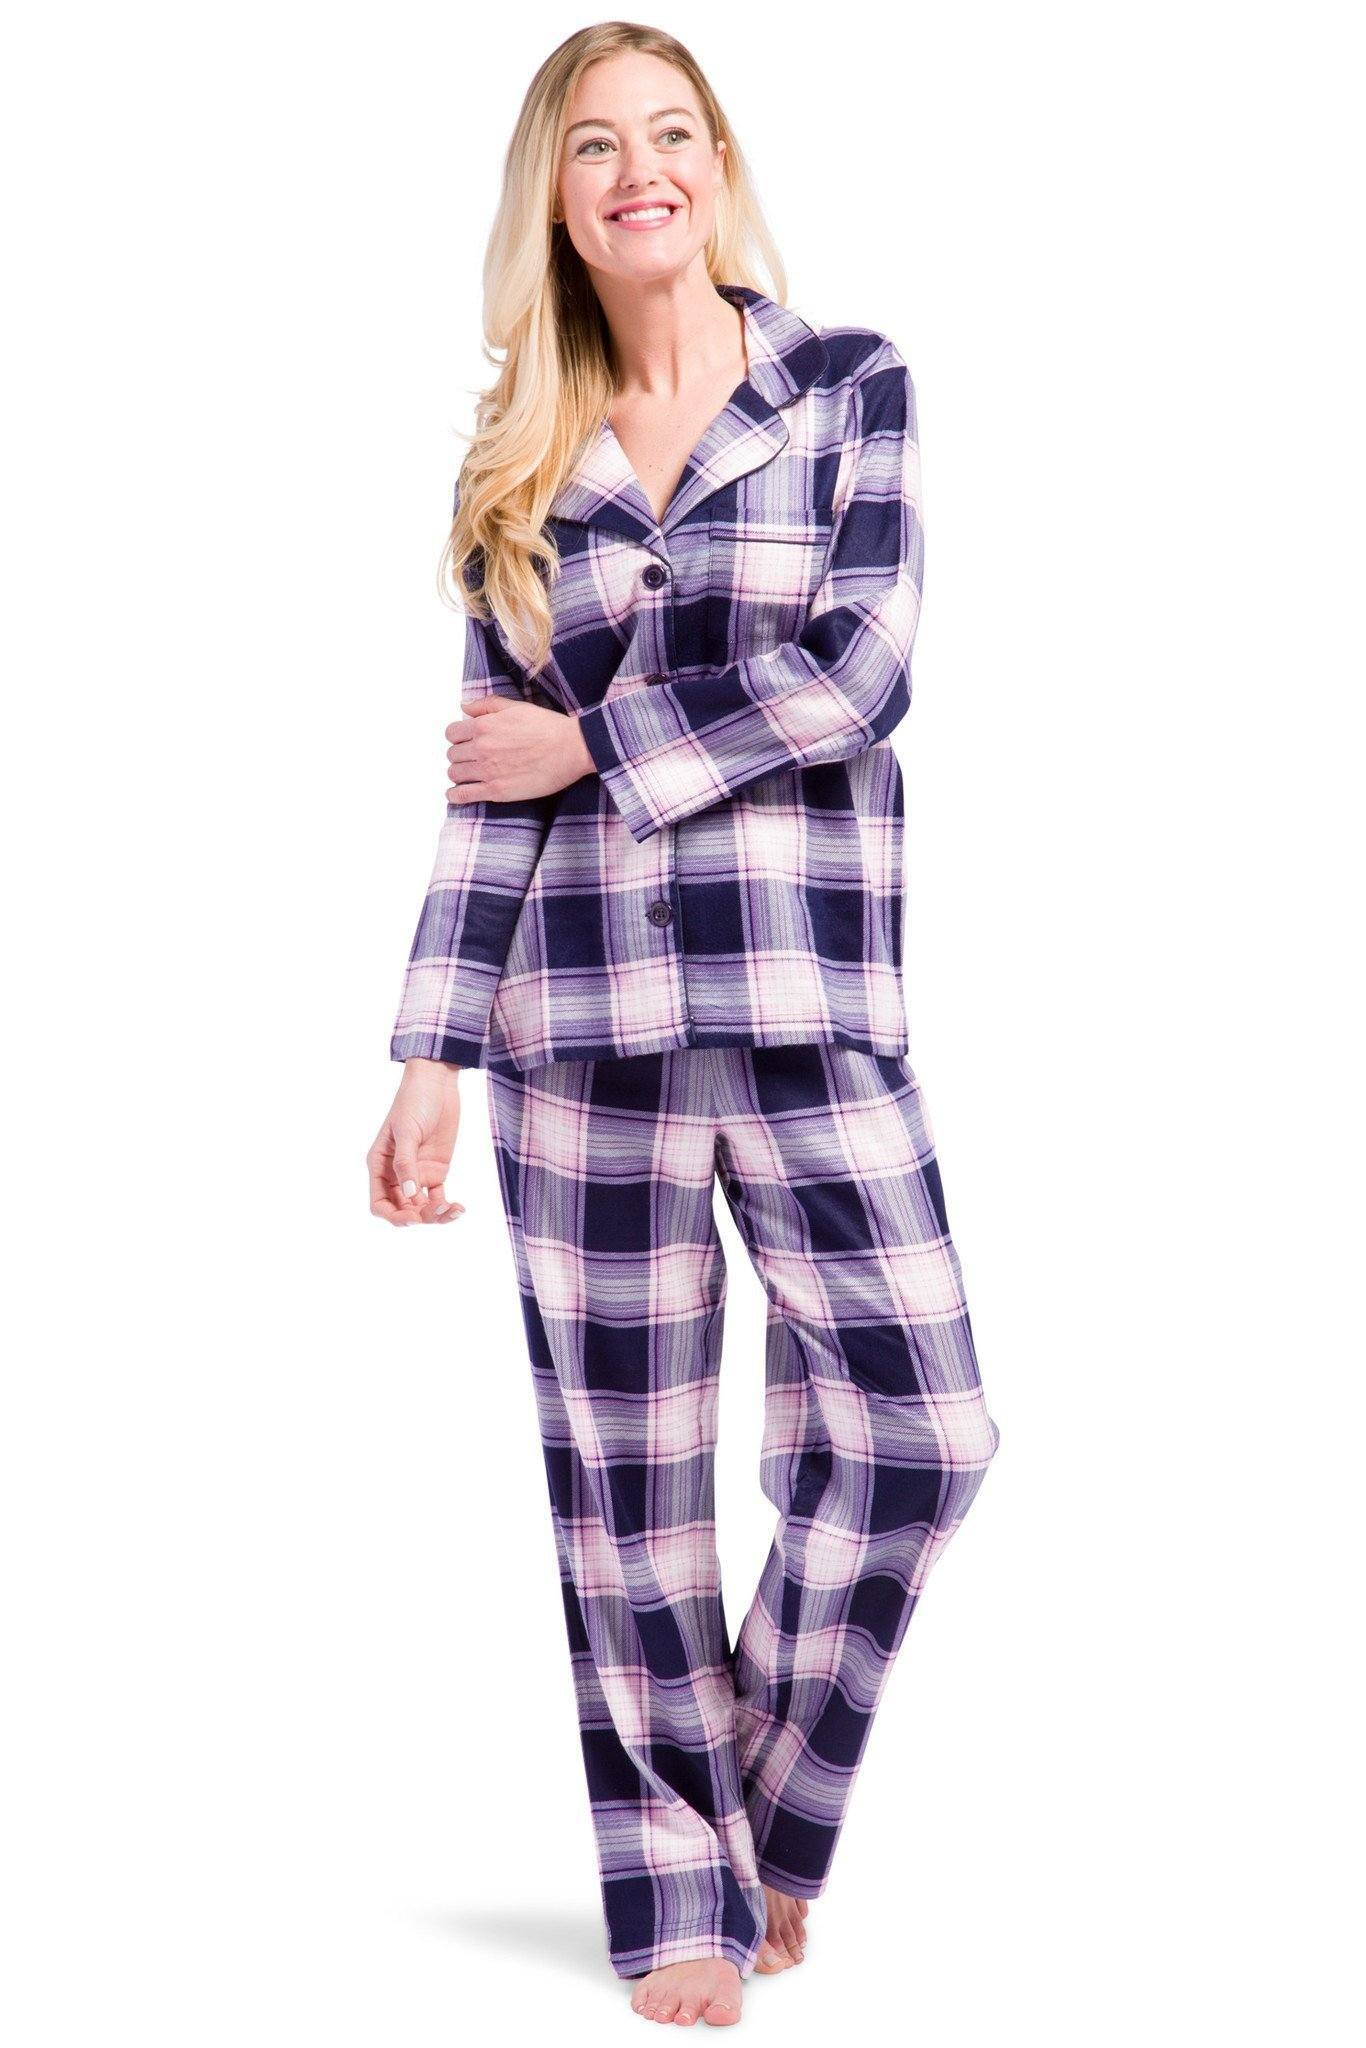 Fishers Finery - Women's EcoFlannel™ Full Length Plaid Pajama Set With Gift Box